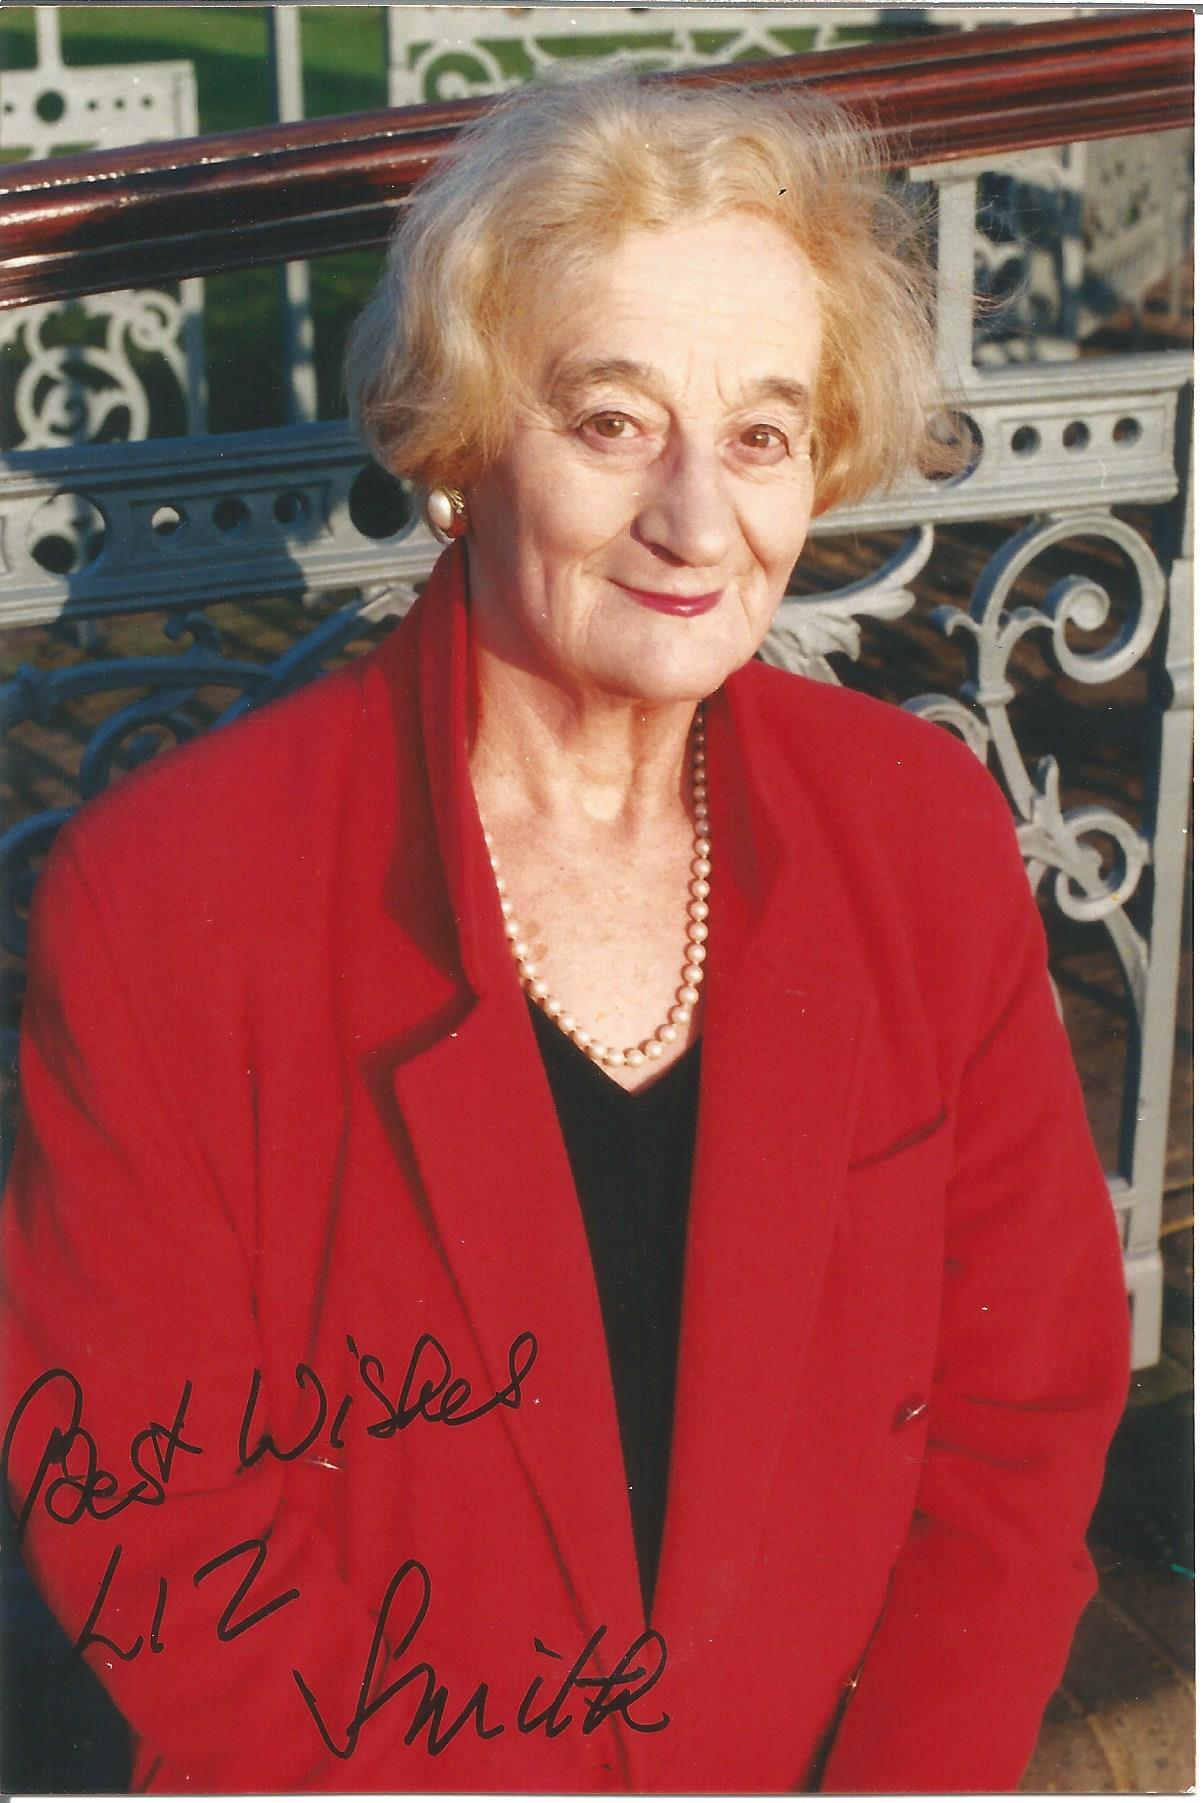 Actress Liz Smith signed 6x4 black and white photo. Betty Gleadle MBE, known by the stage name Liz